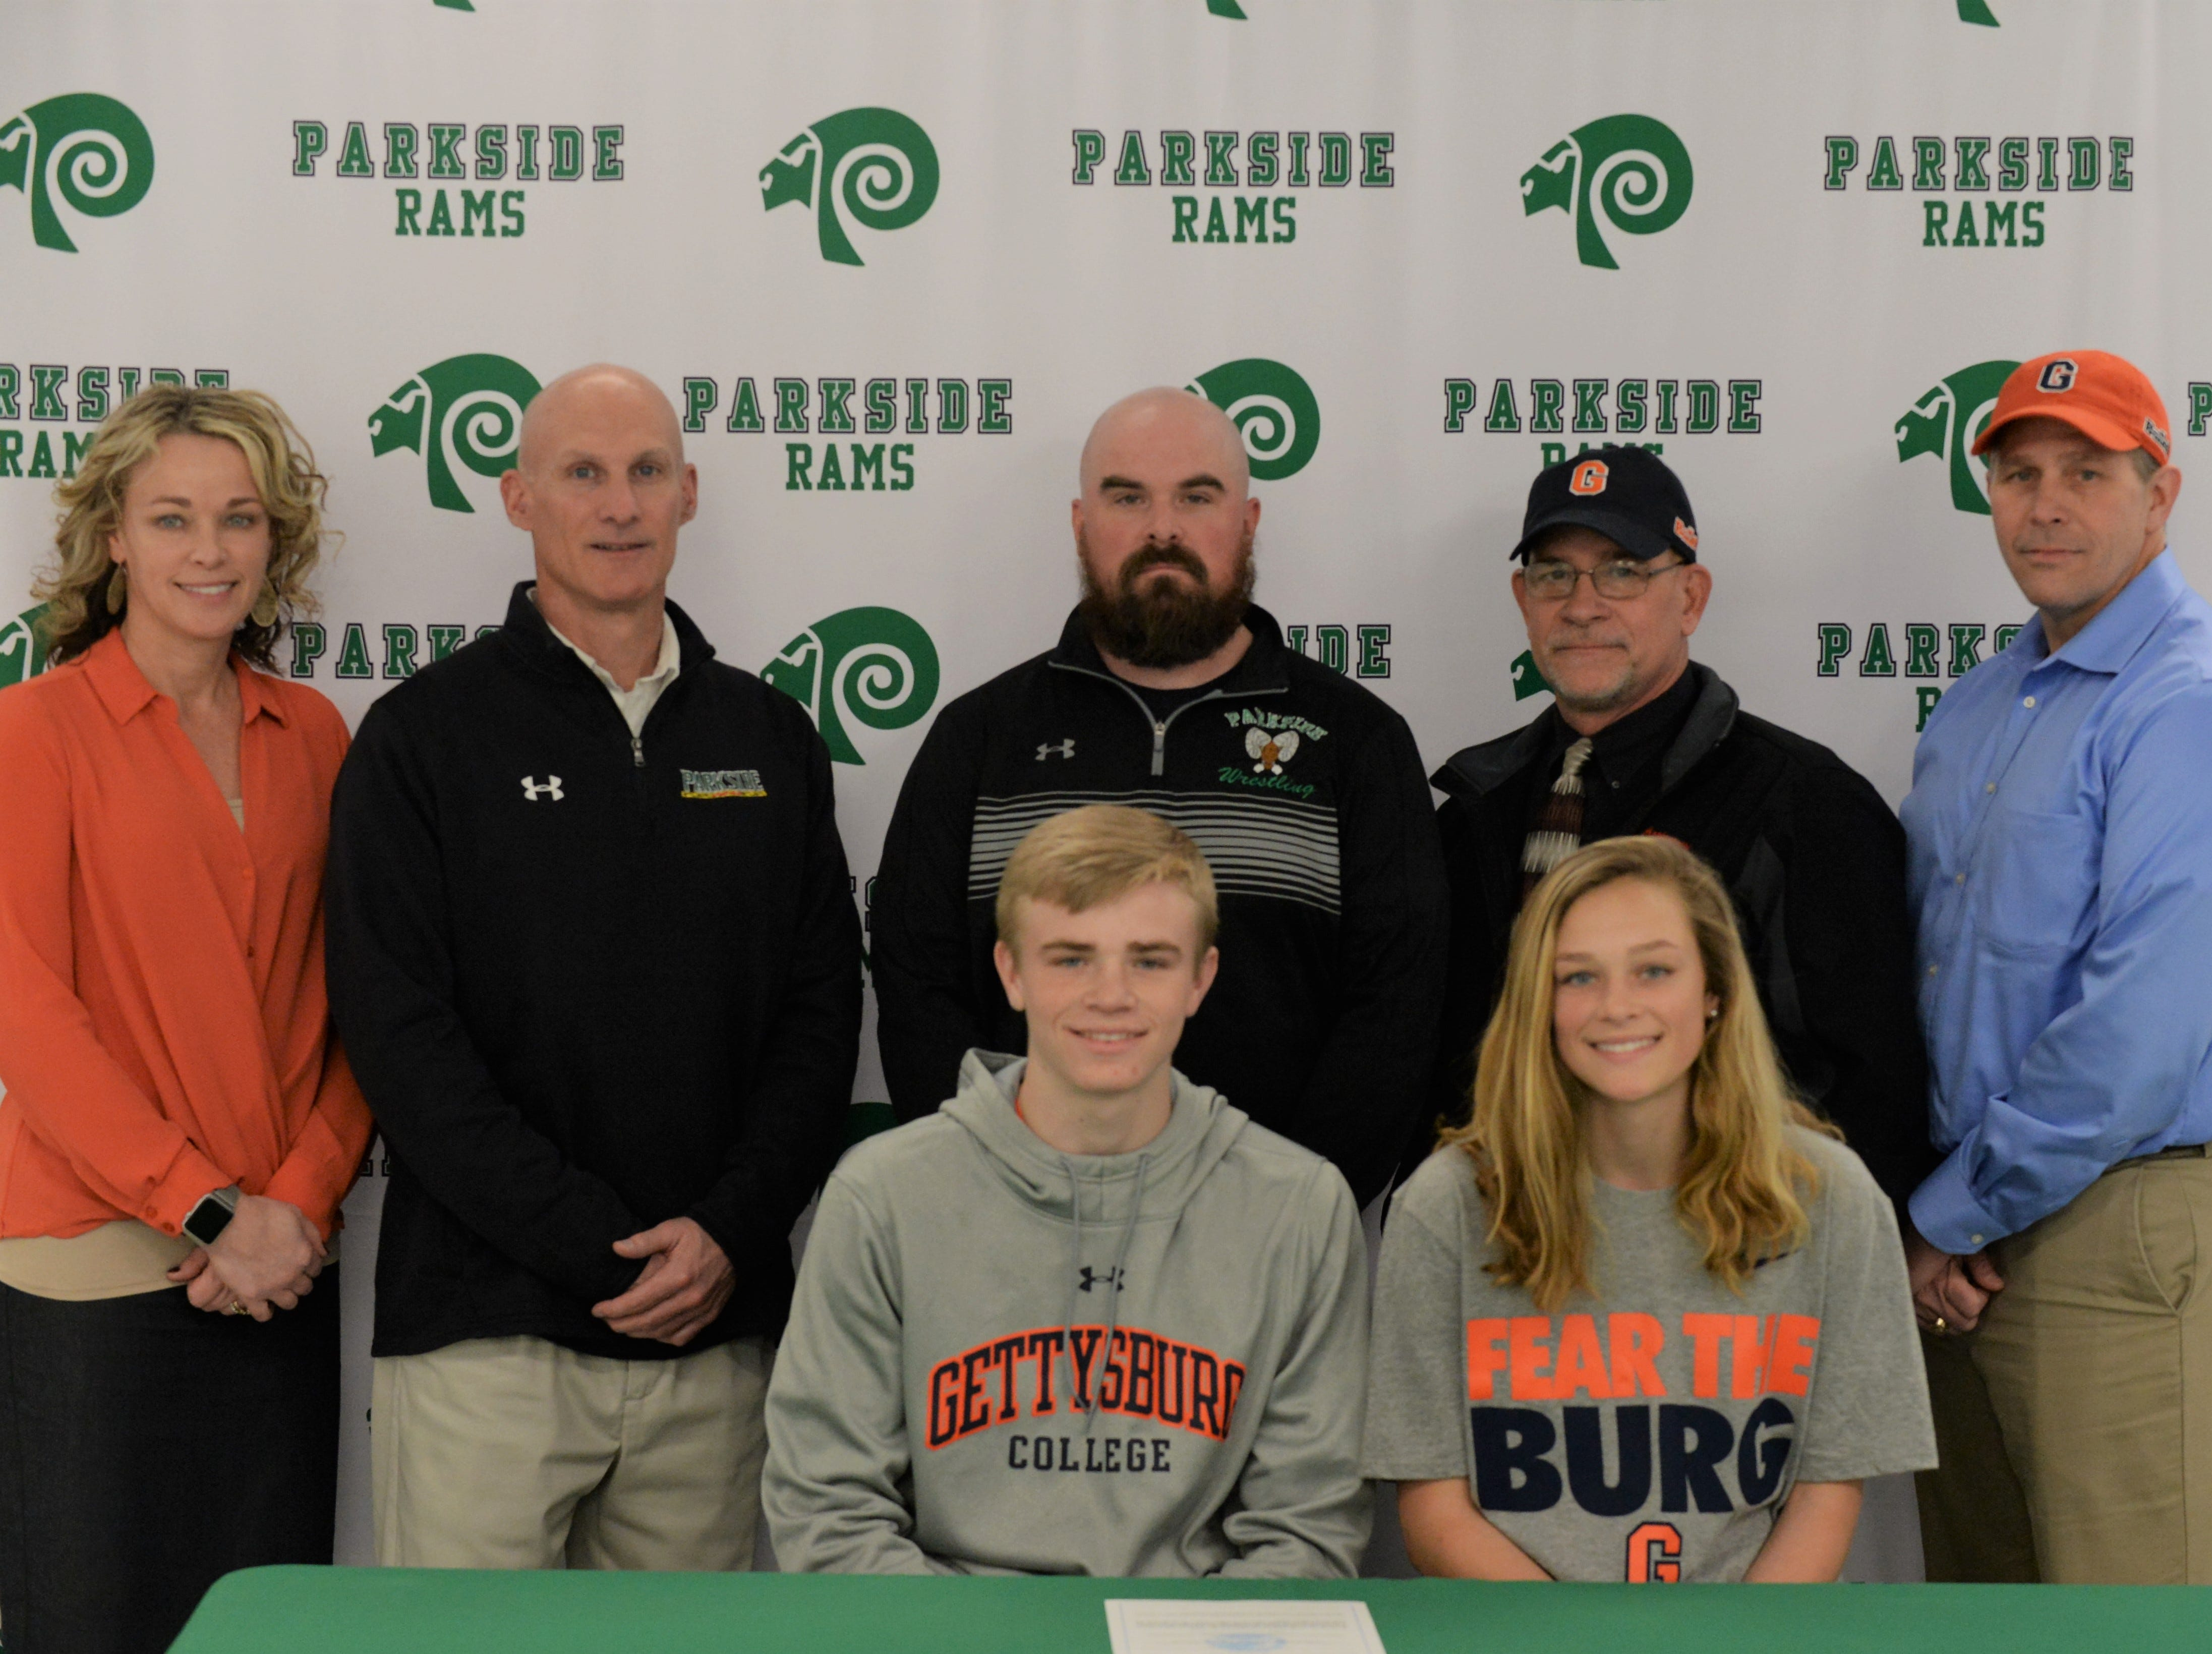 Parkside wrestler Michael Daugherty announces his intent to wrestler at Gettysburg College on Friday, March 22, 2019.